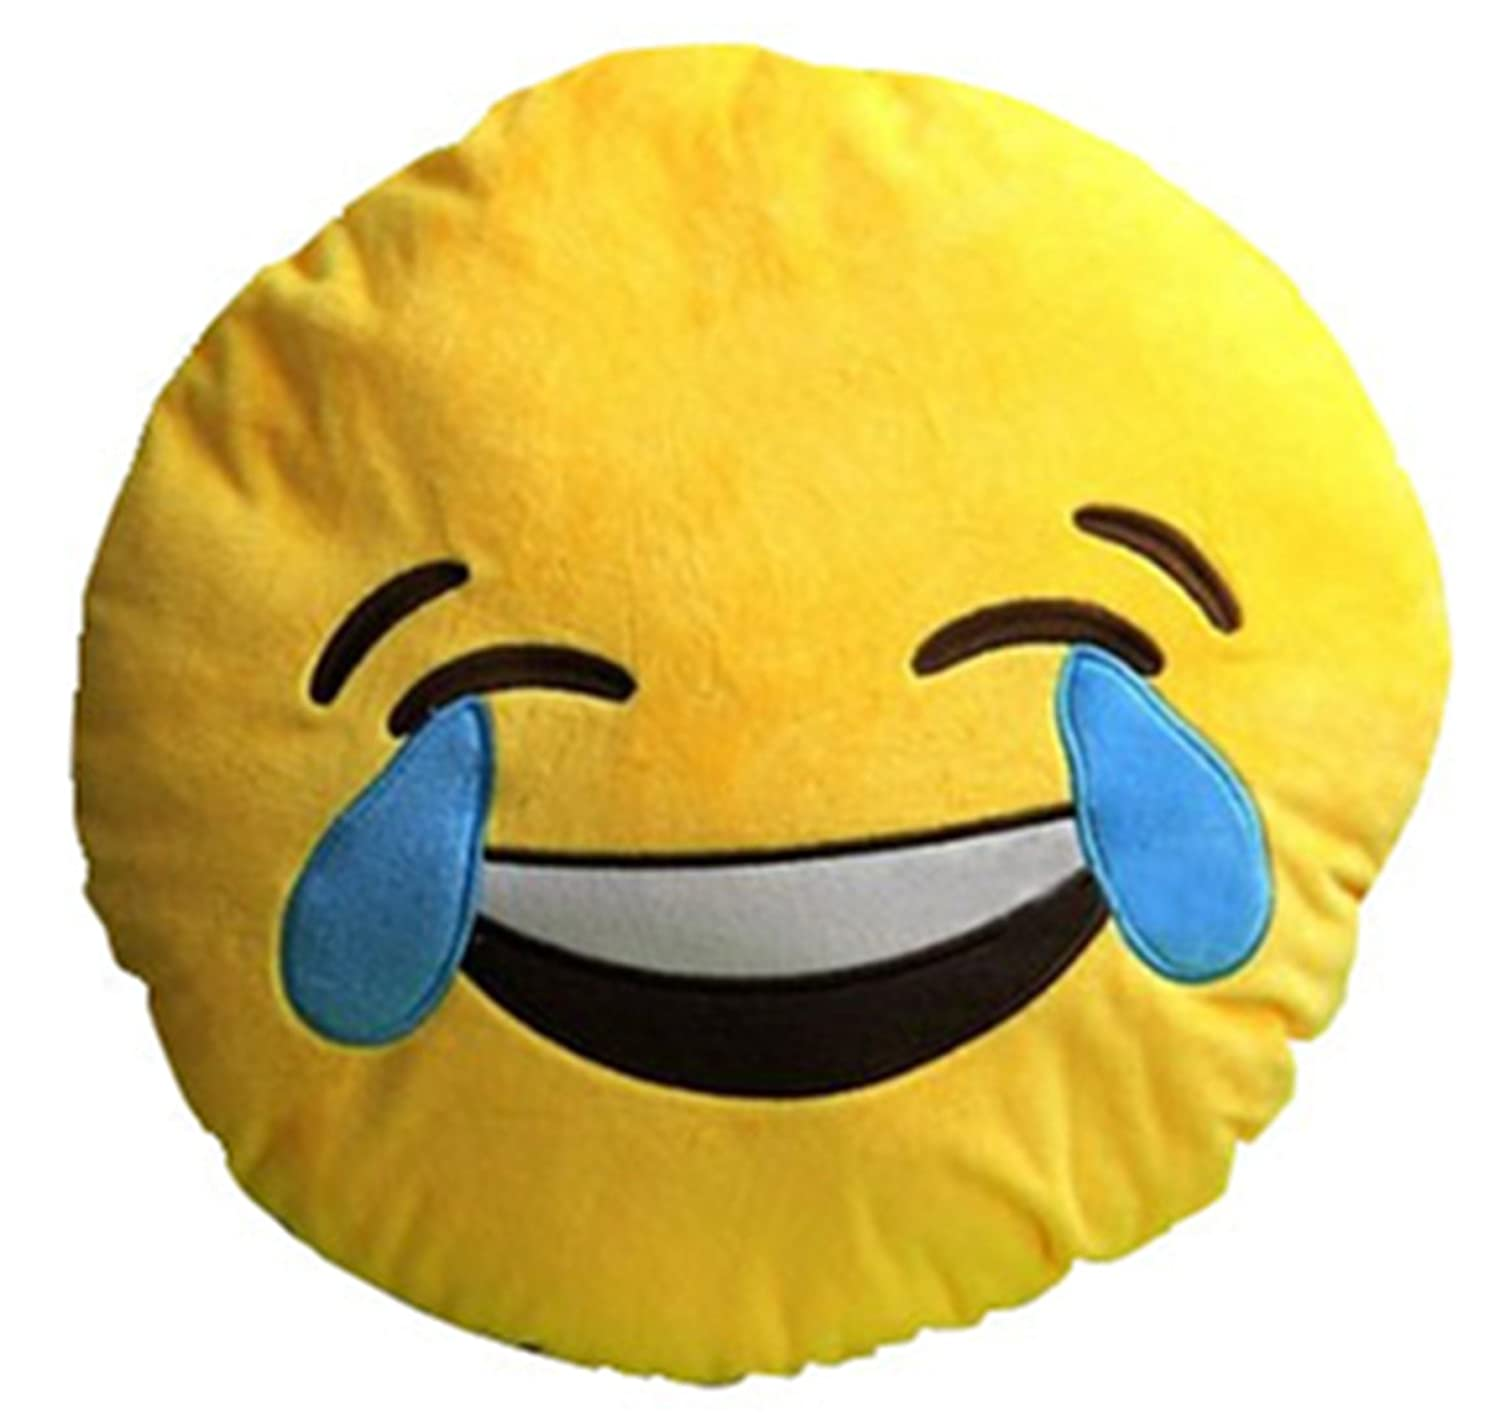 List of Synonyms and Antonyms of the Word: laughing face emoji - photo#19